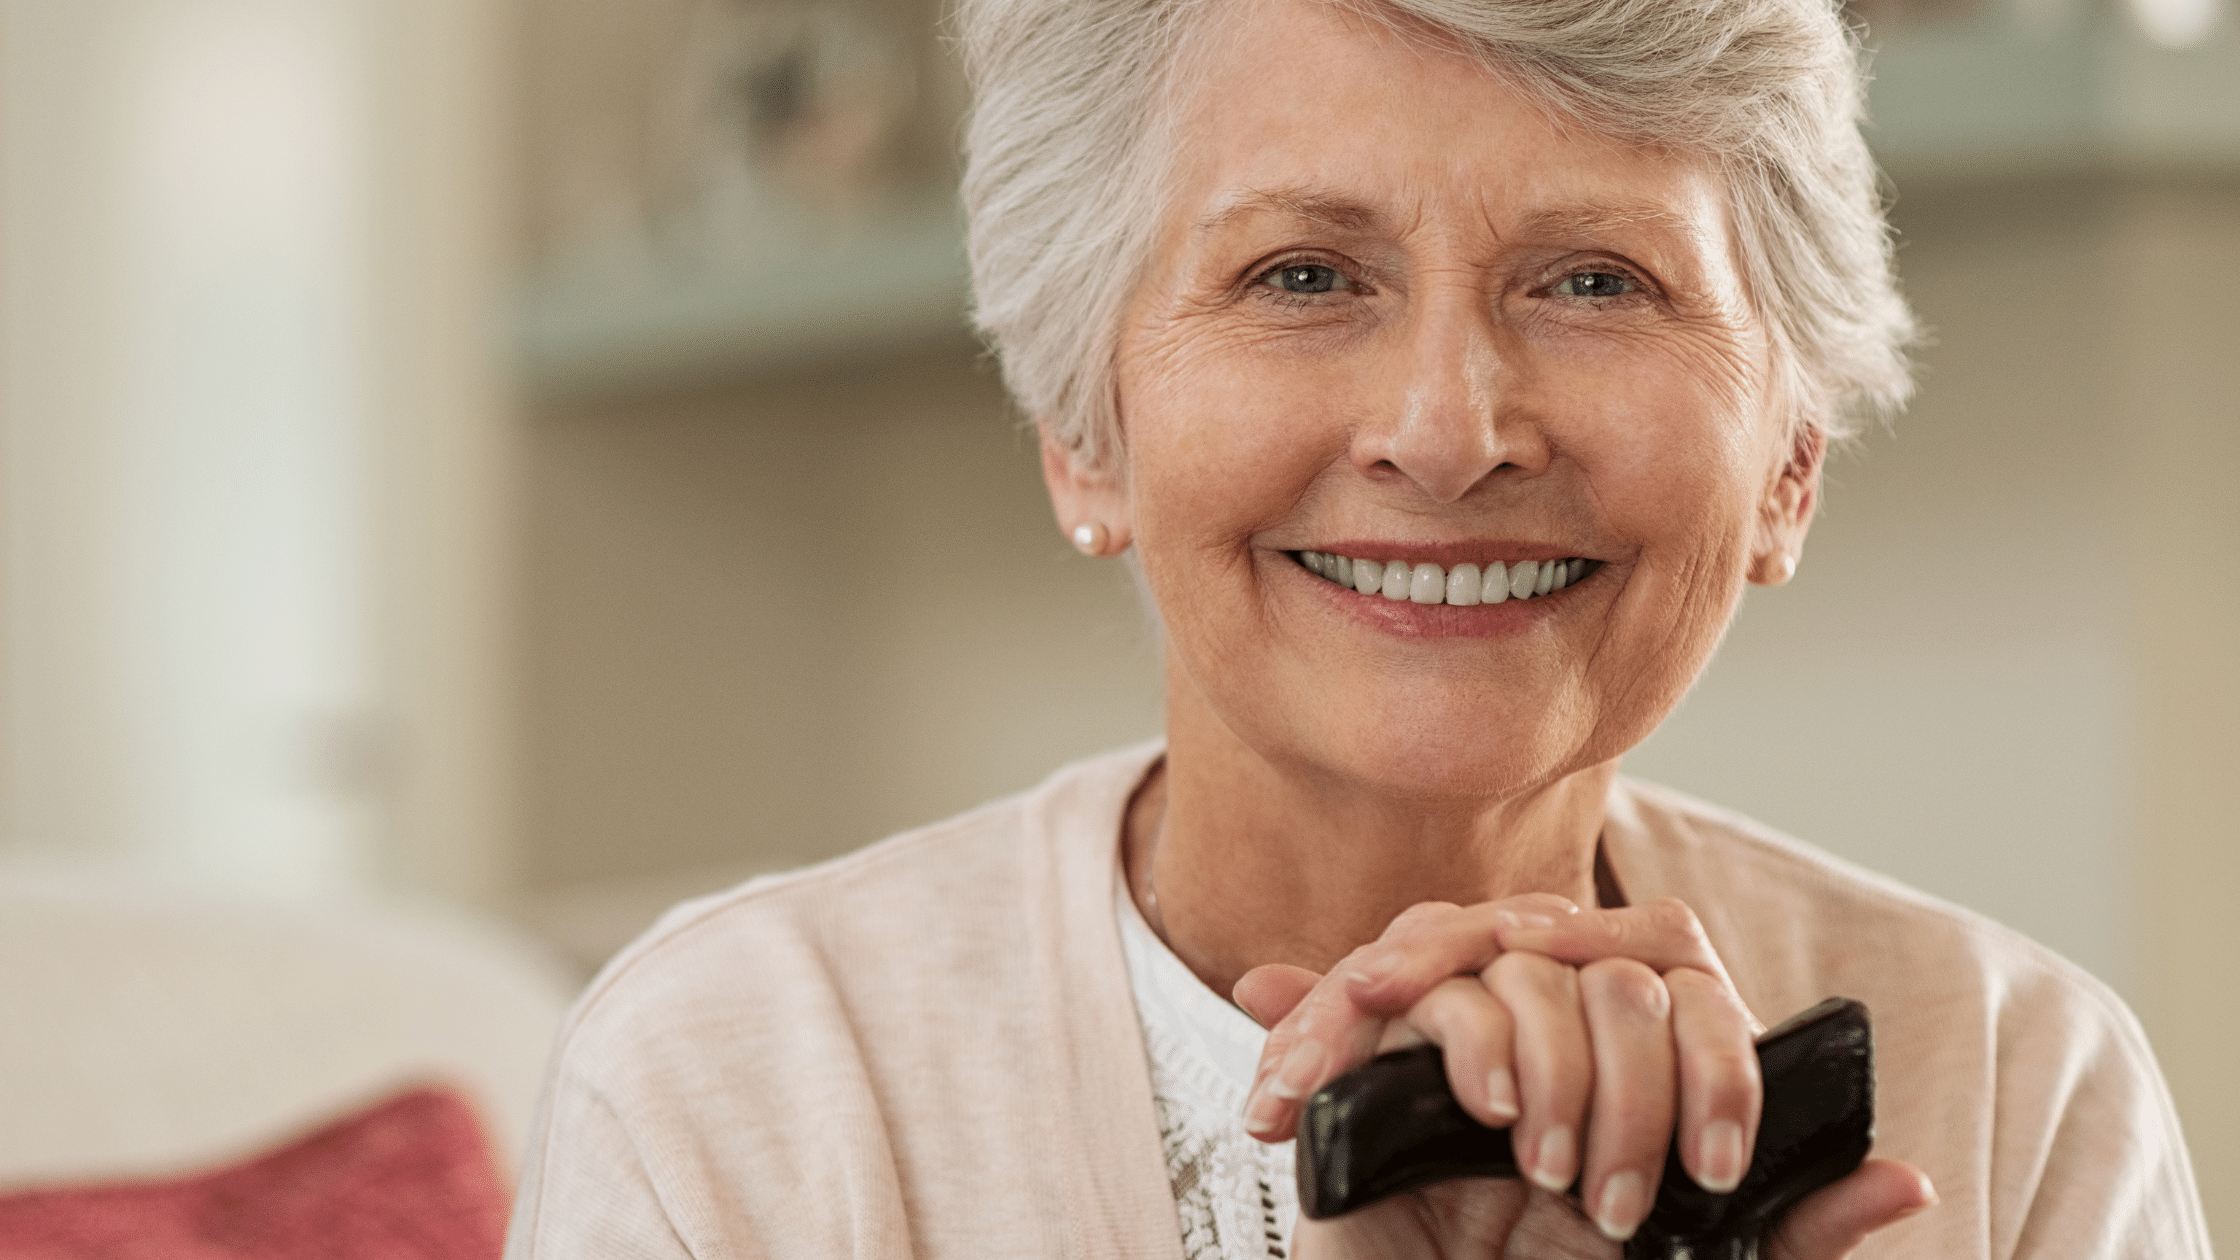 in-home care senior care